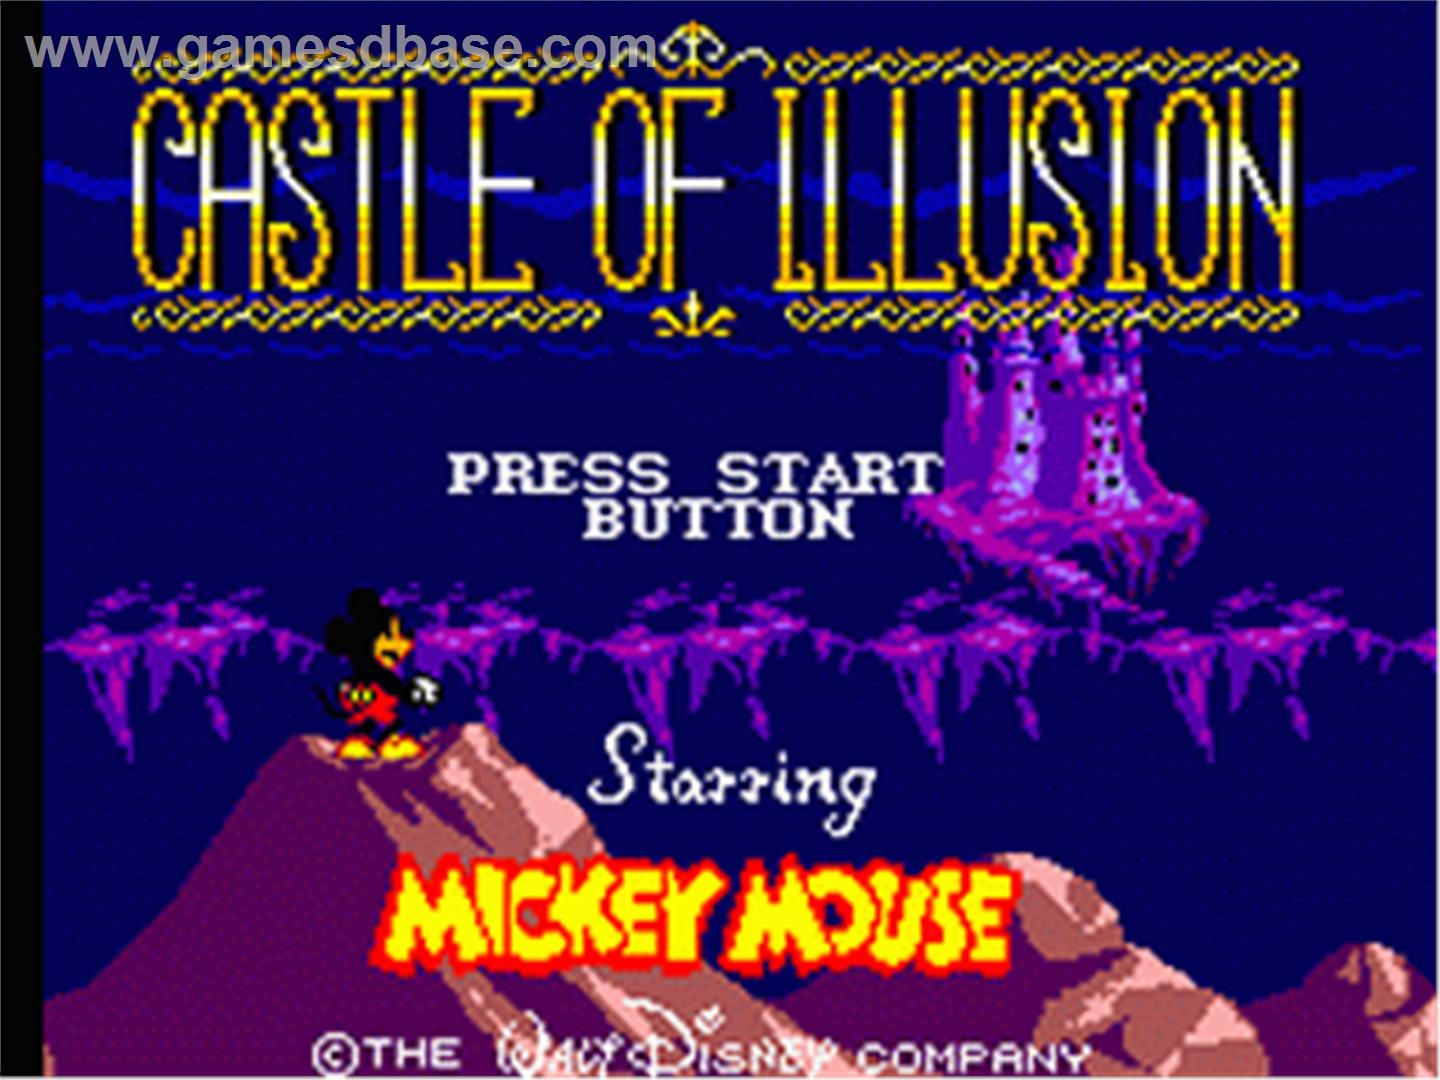 Mysterious Sega video potential Castle of Illusion teaser?